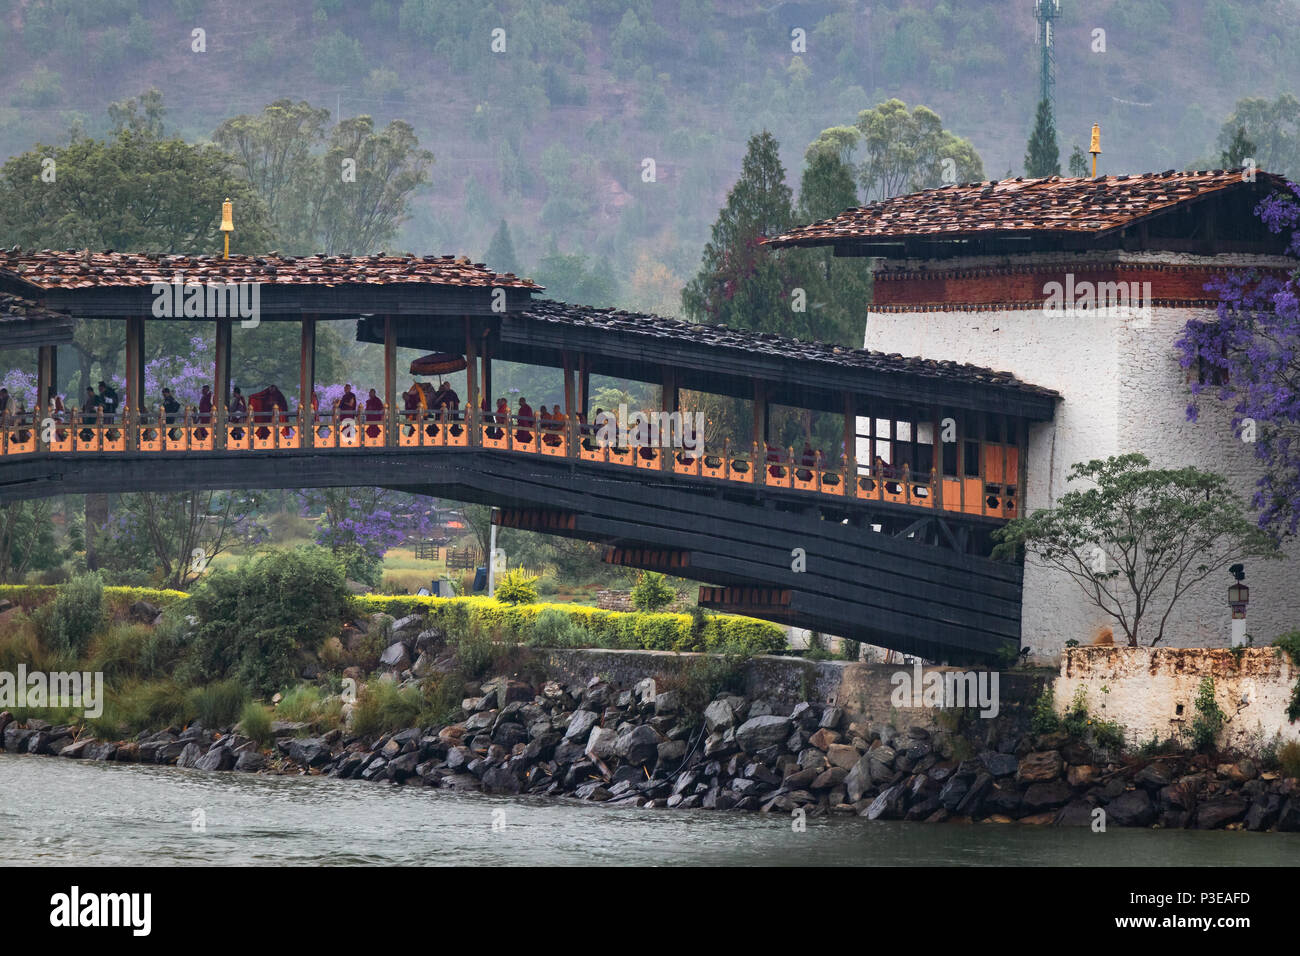 The wooden bridge at the entrance of Punakha Dzong with a lot of Monks walking on it during a religious procession - Stock Image